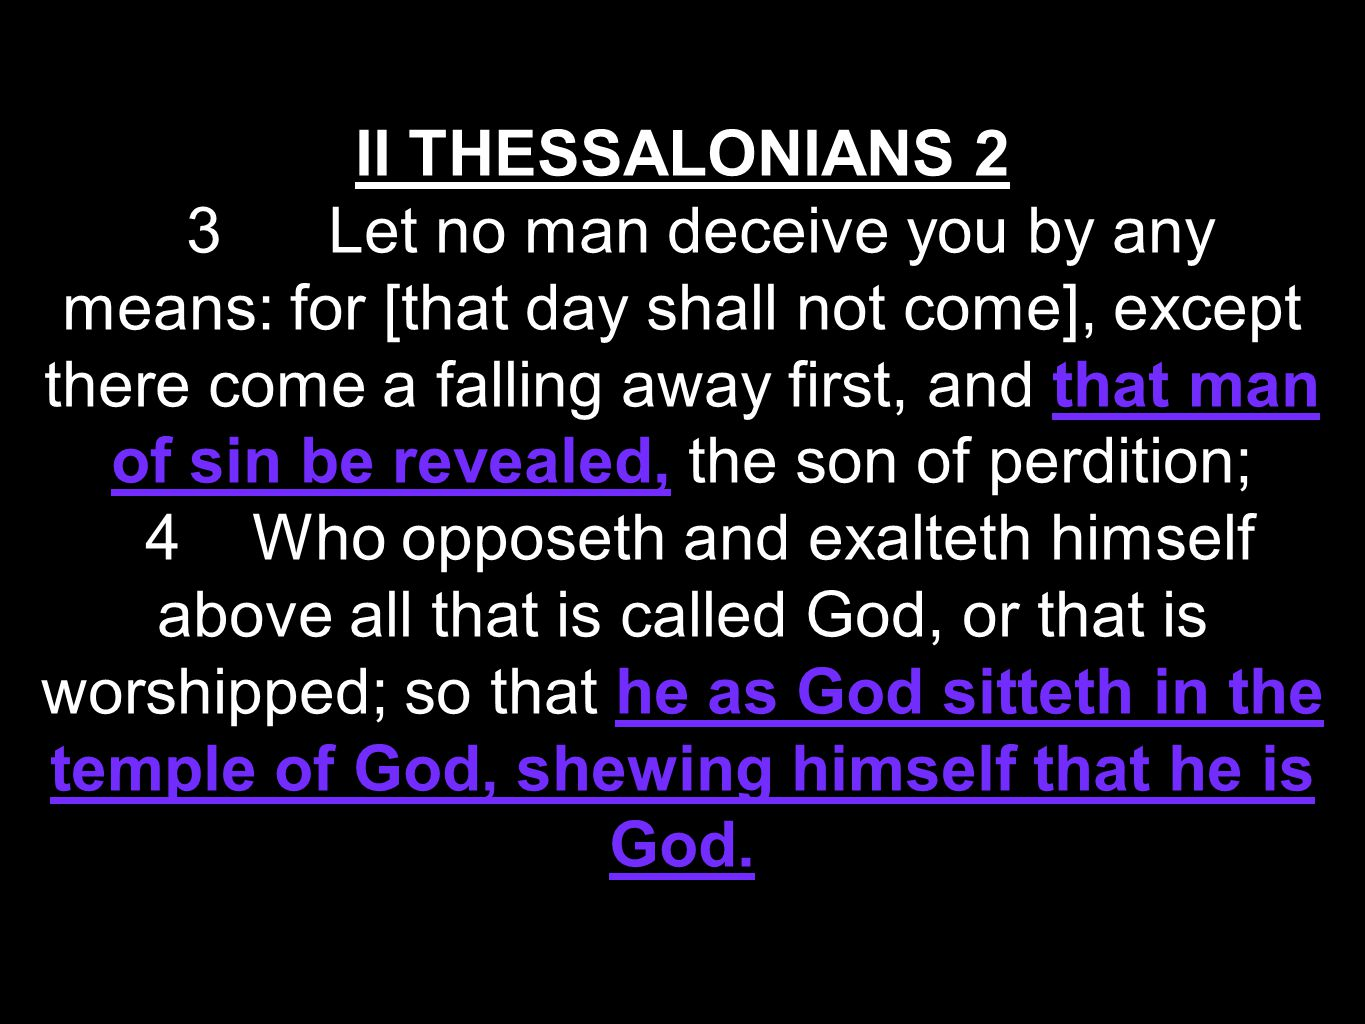 II THESSALONIANS 2 3 Let no man deceive you by any means: for [that day shall not come], except there come a falling away first, and that man of sin be revealed, the son of perdition; 4 Who opposeth and exalteth himself above all that is called God, or that is worshipped; so that he as God sitteth in the temple of God, shewing himself that he is God.